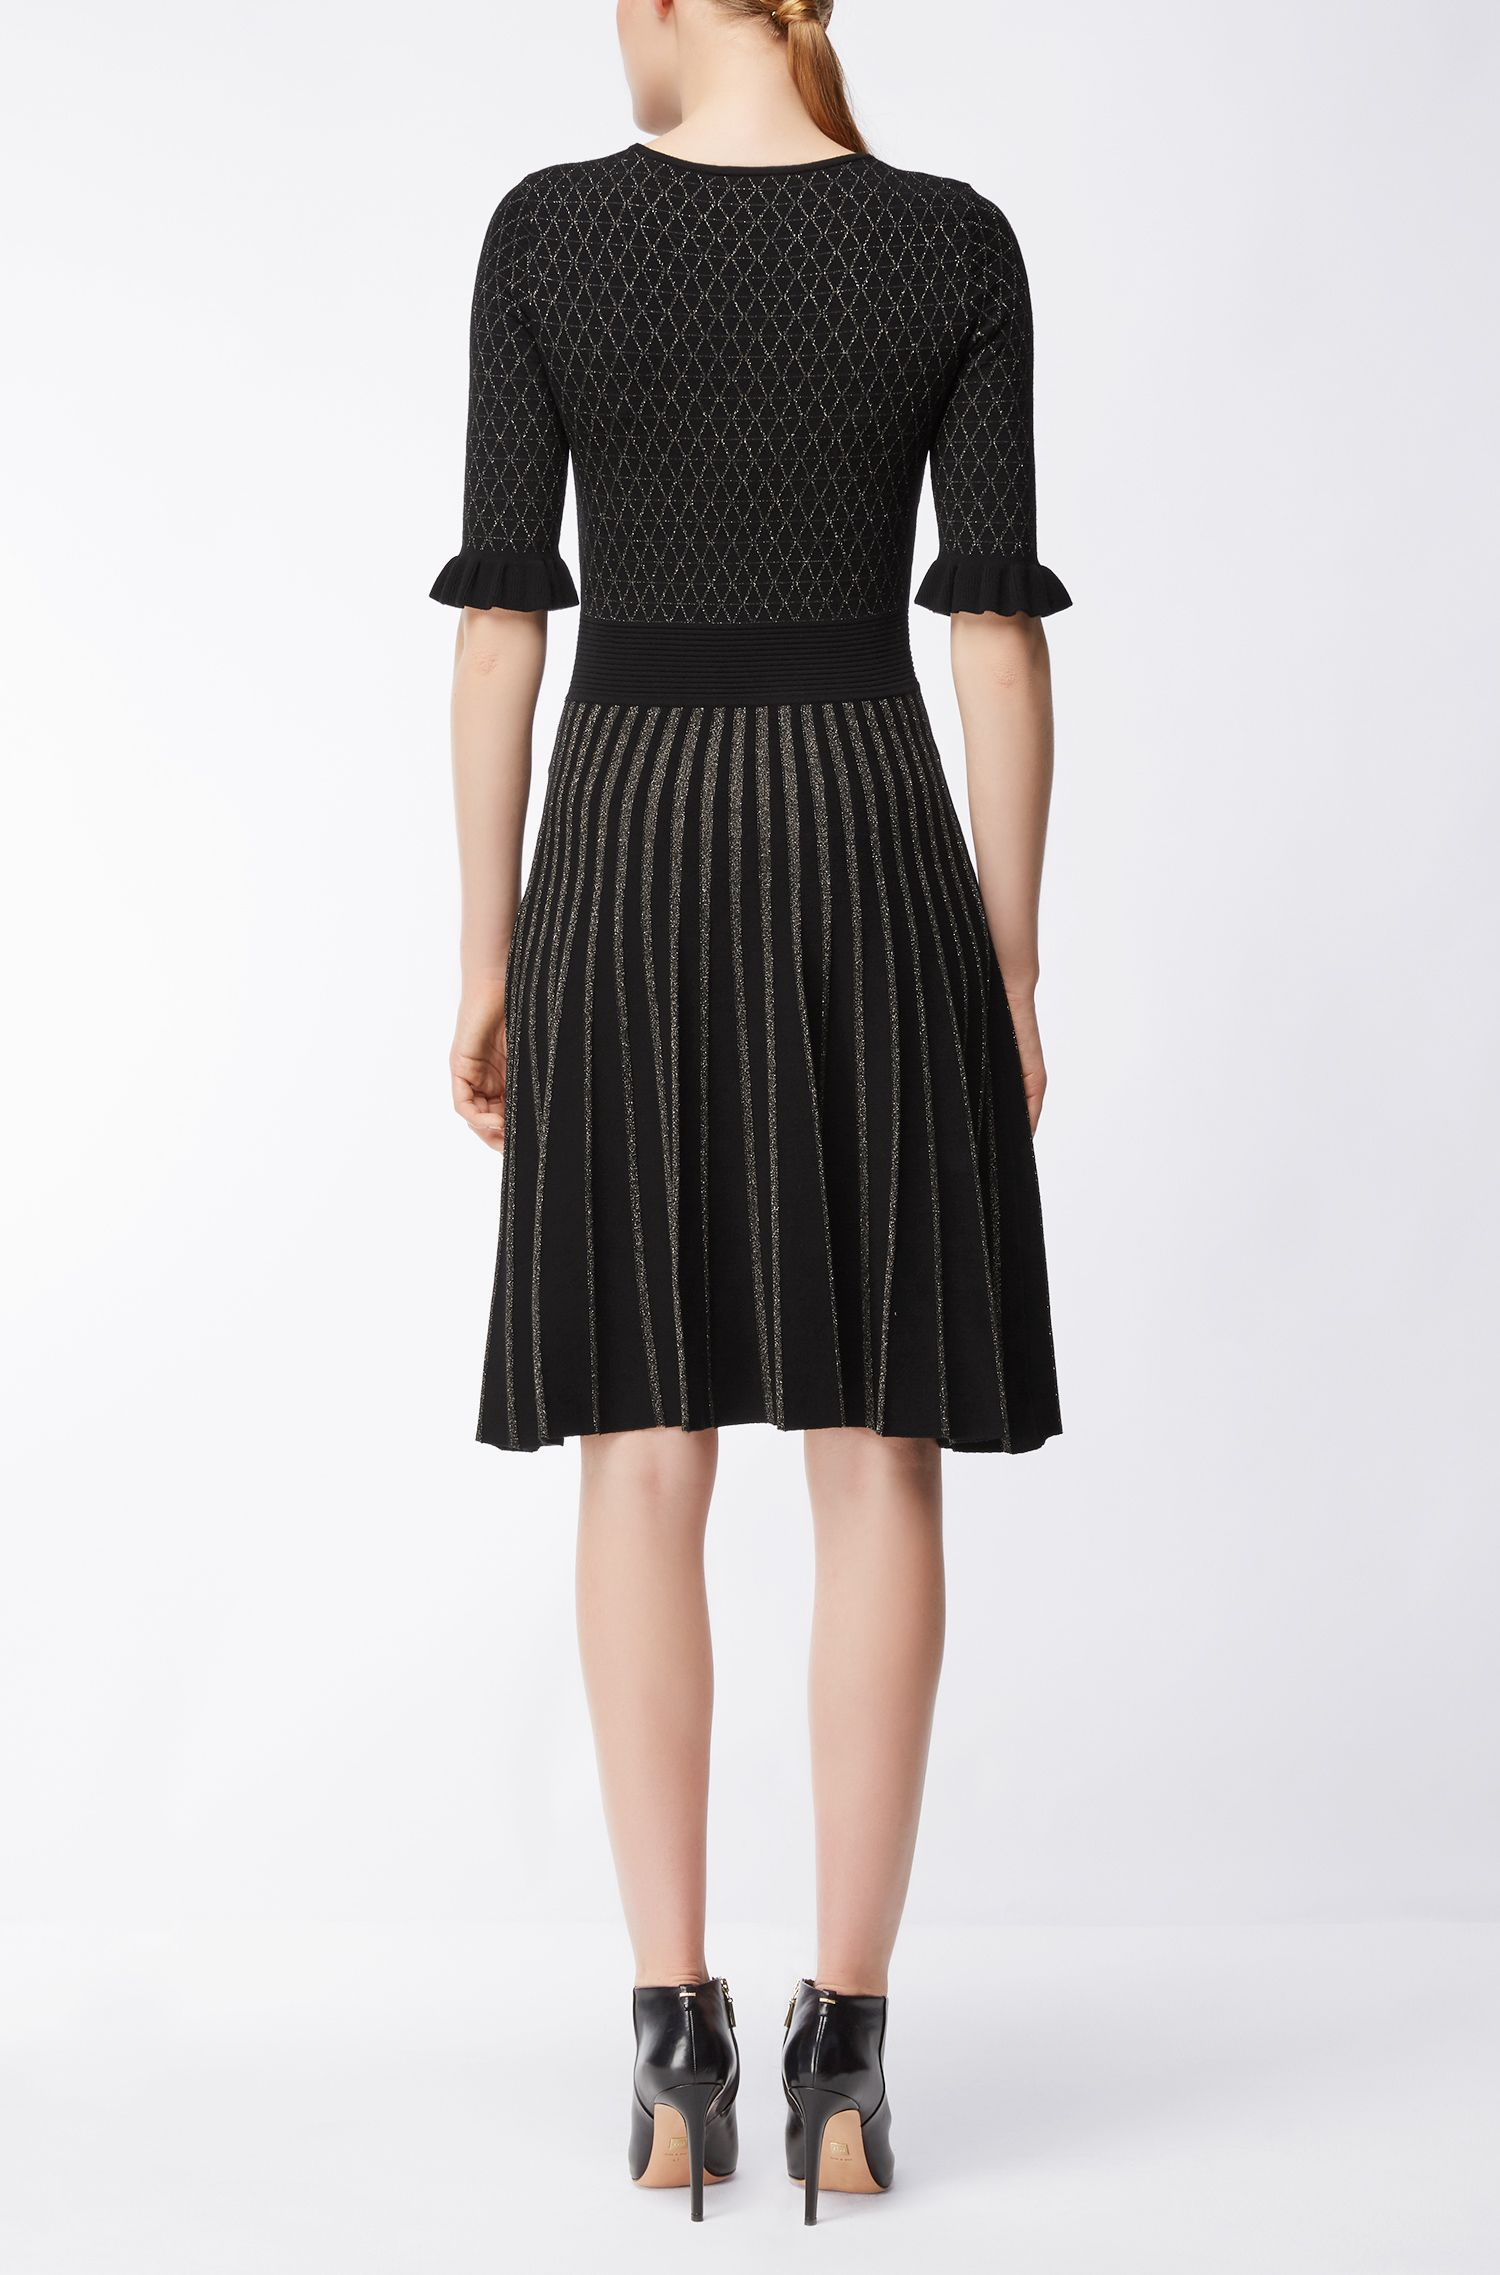 Knee-length dress in mixed knitted jacquard